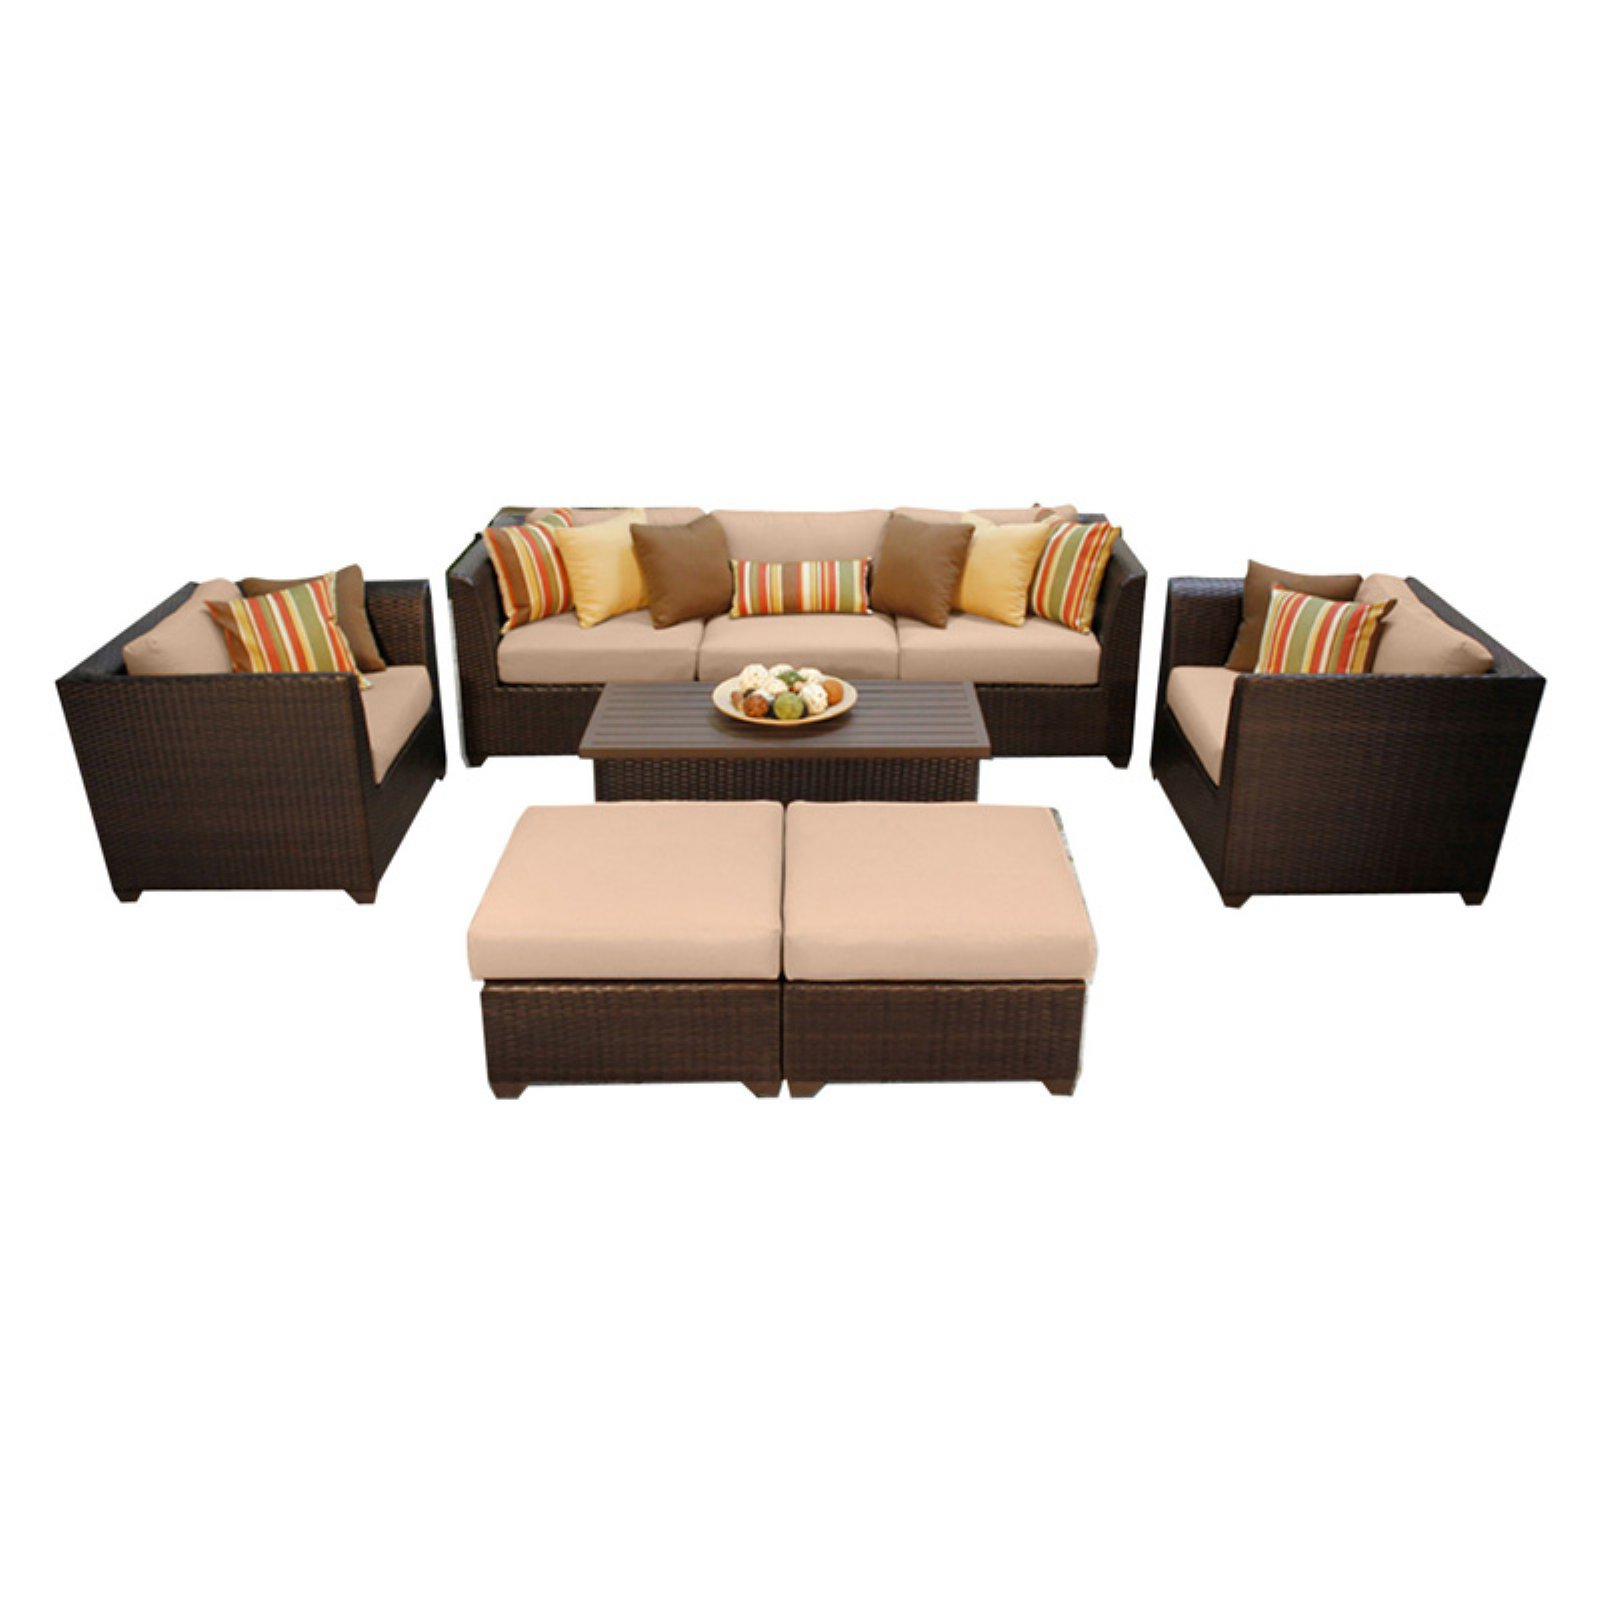 TK Classics Barbados Wicker 8 Piece Patio Conversation Set with Ottoman and 2 Sets of Cushion Covers by Delacora